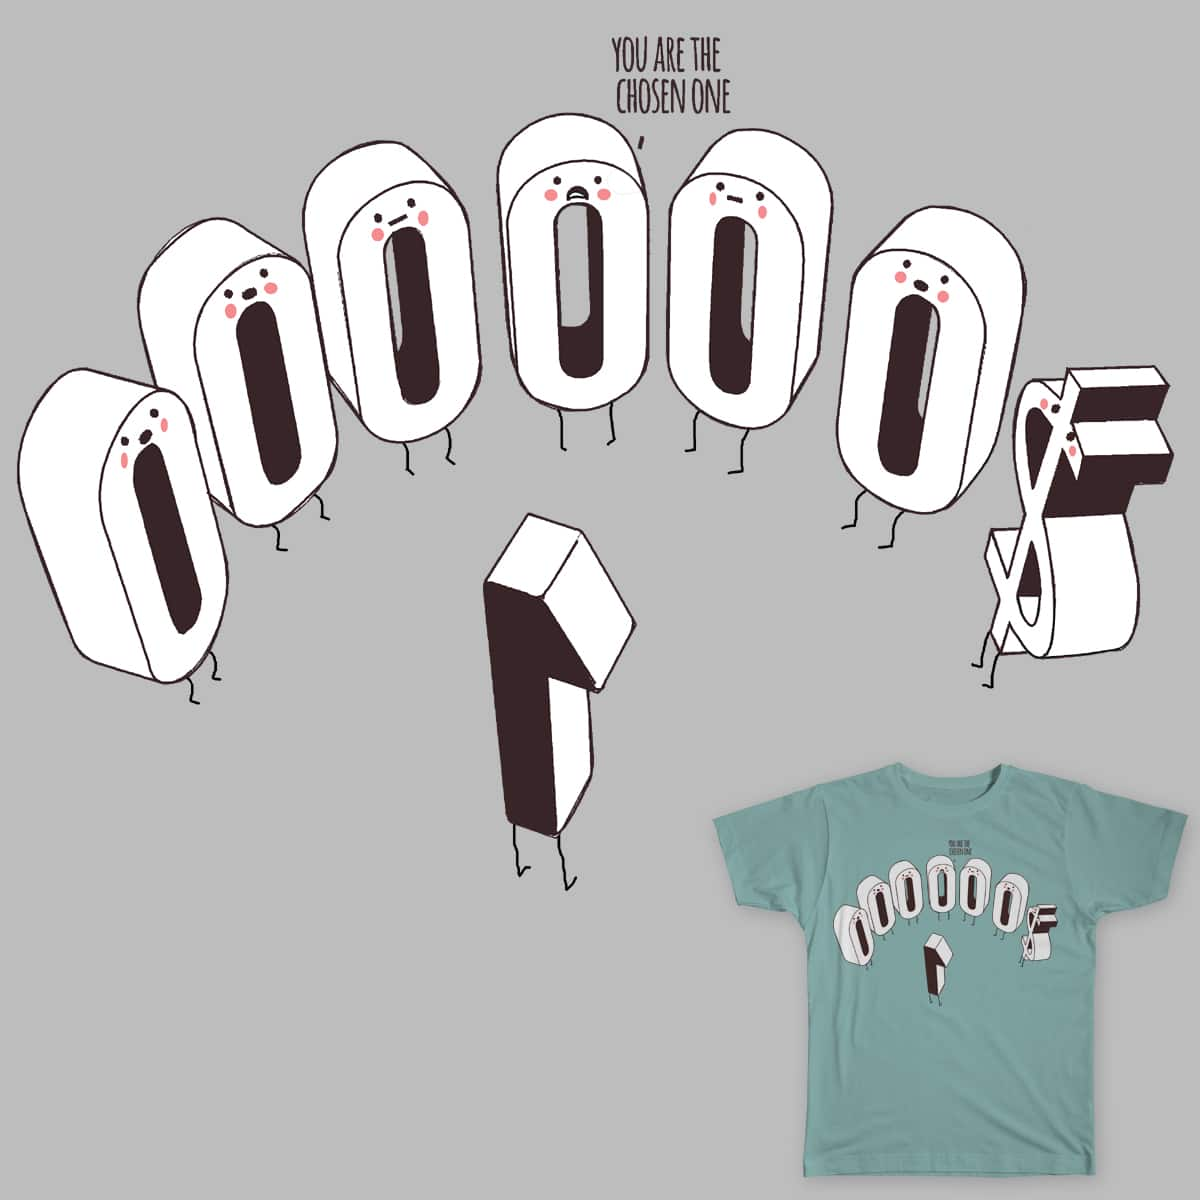 My pocket quest by weoos_02 on Threadless